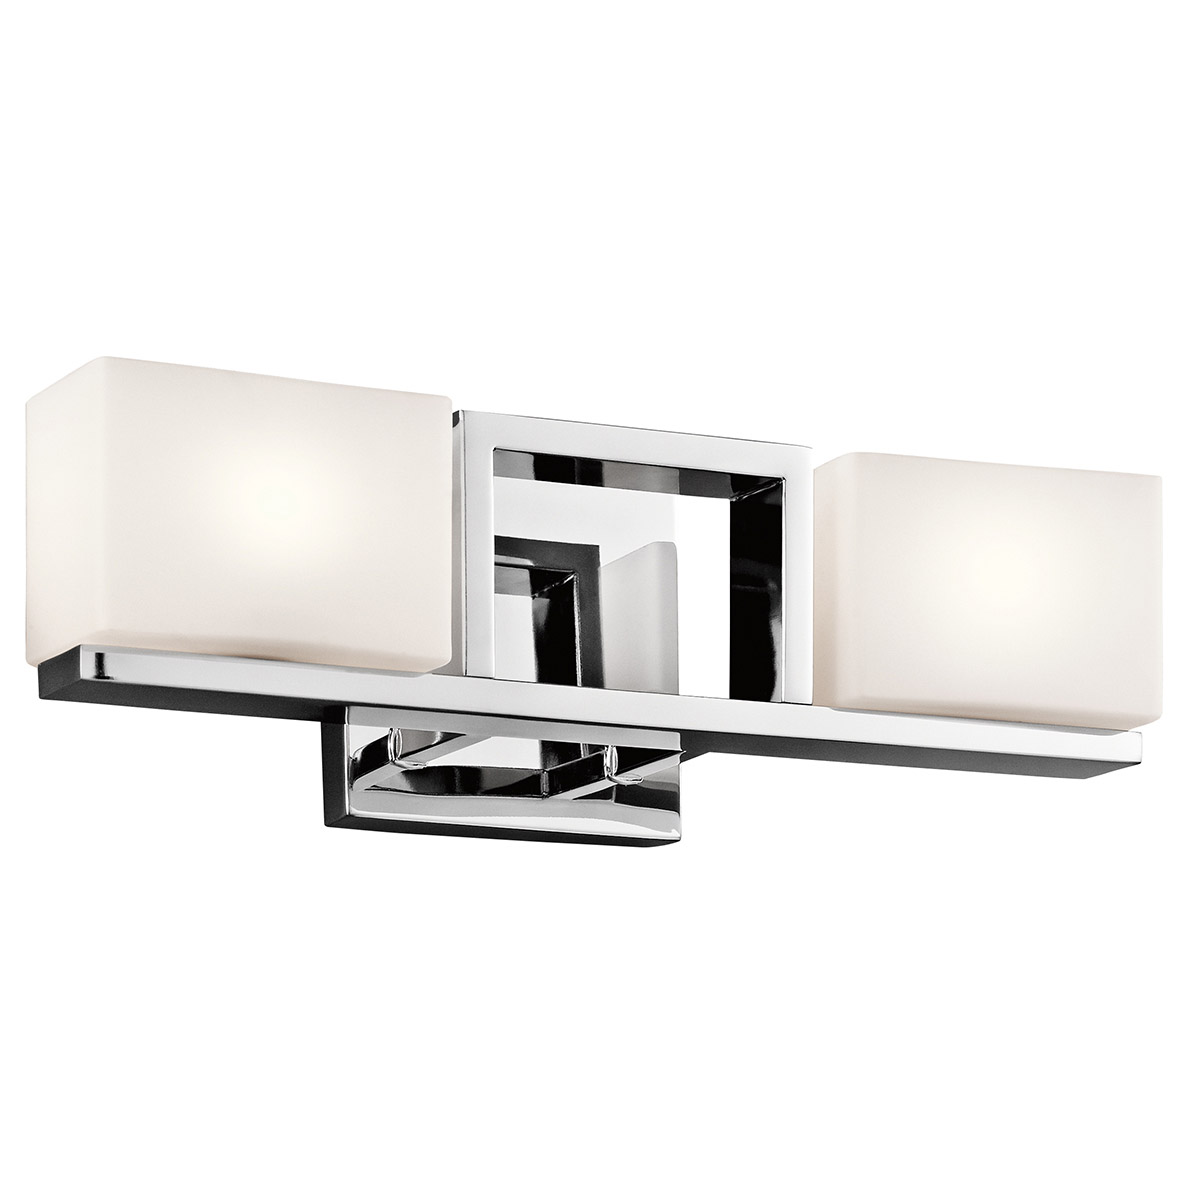 Bathroom Vanity Halogen Lights : Kichler 45602CH Keo Halogen Bathroom Vanity Light